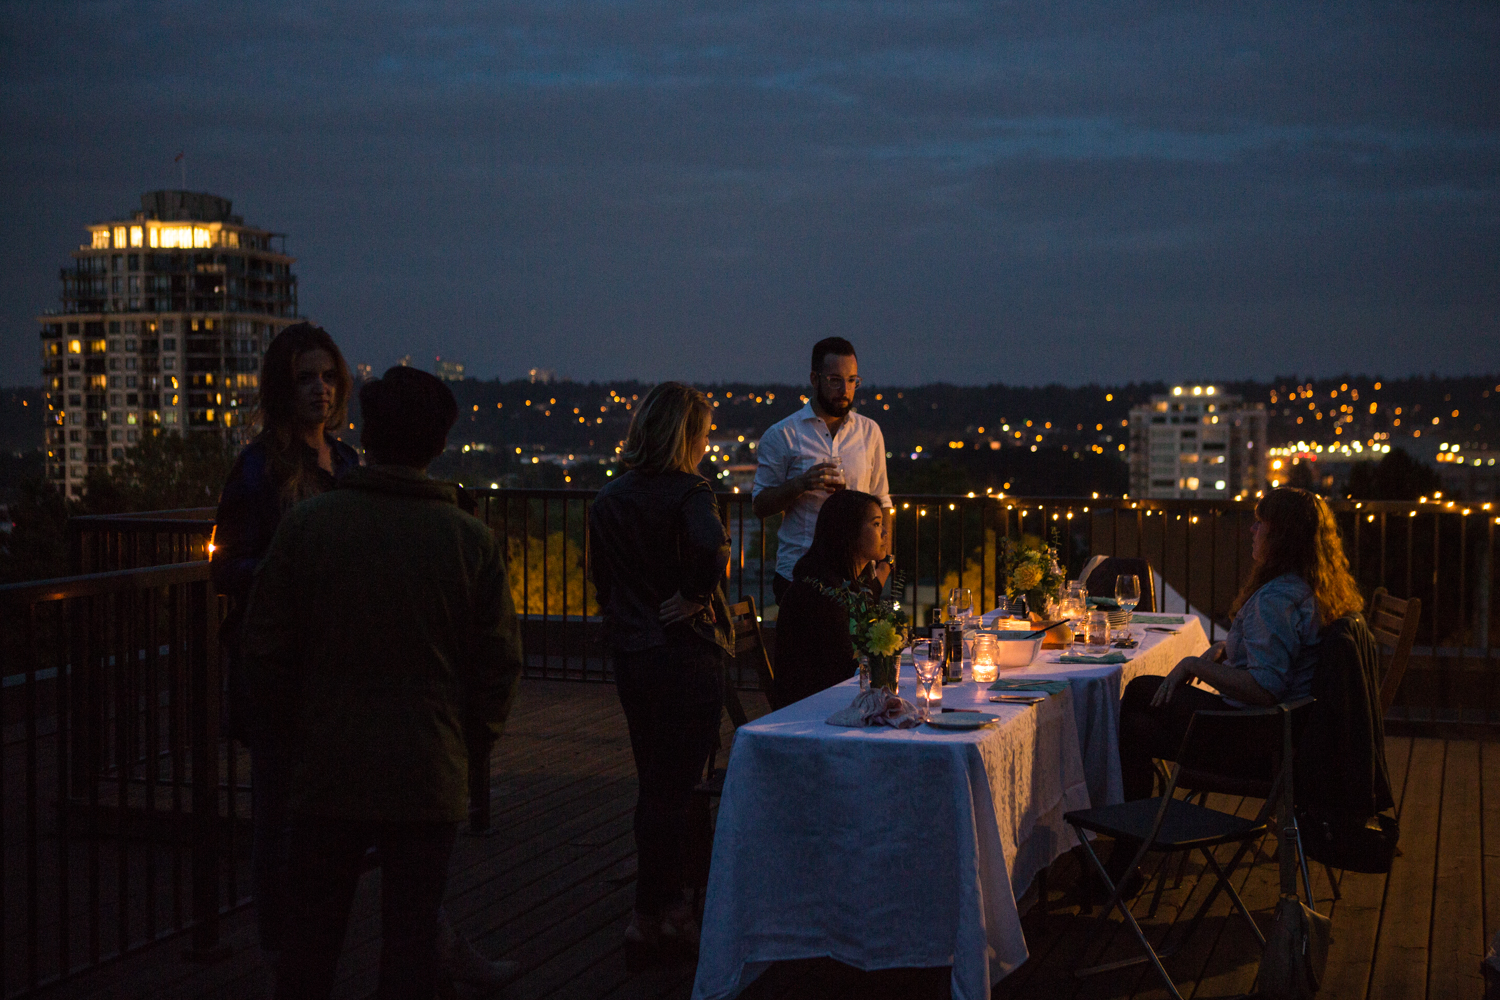 New-Westminster-Rooftop-Dinner-Party_-Bolandia-1992.jpg